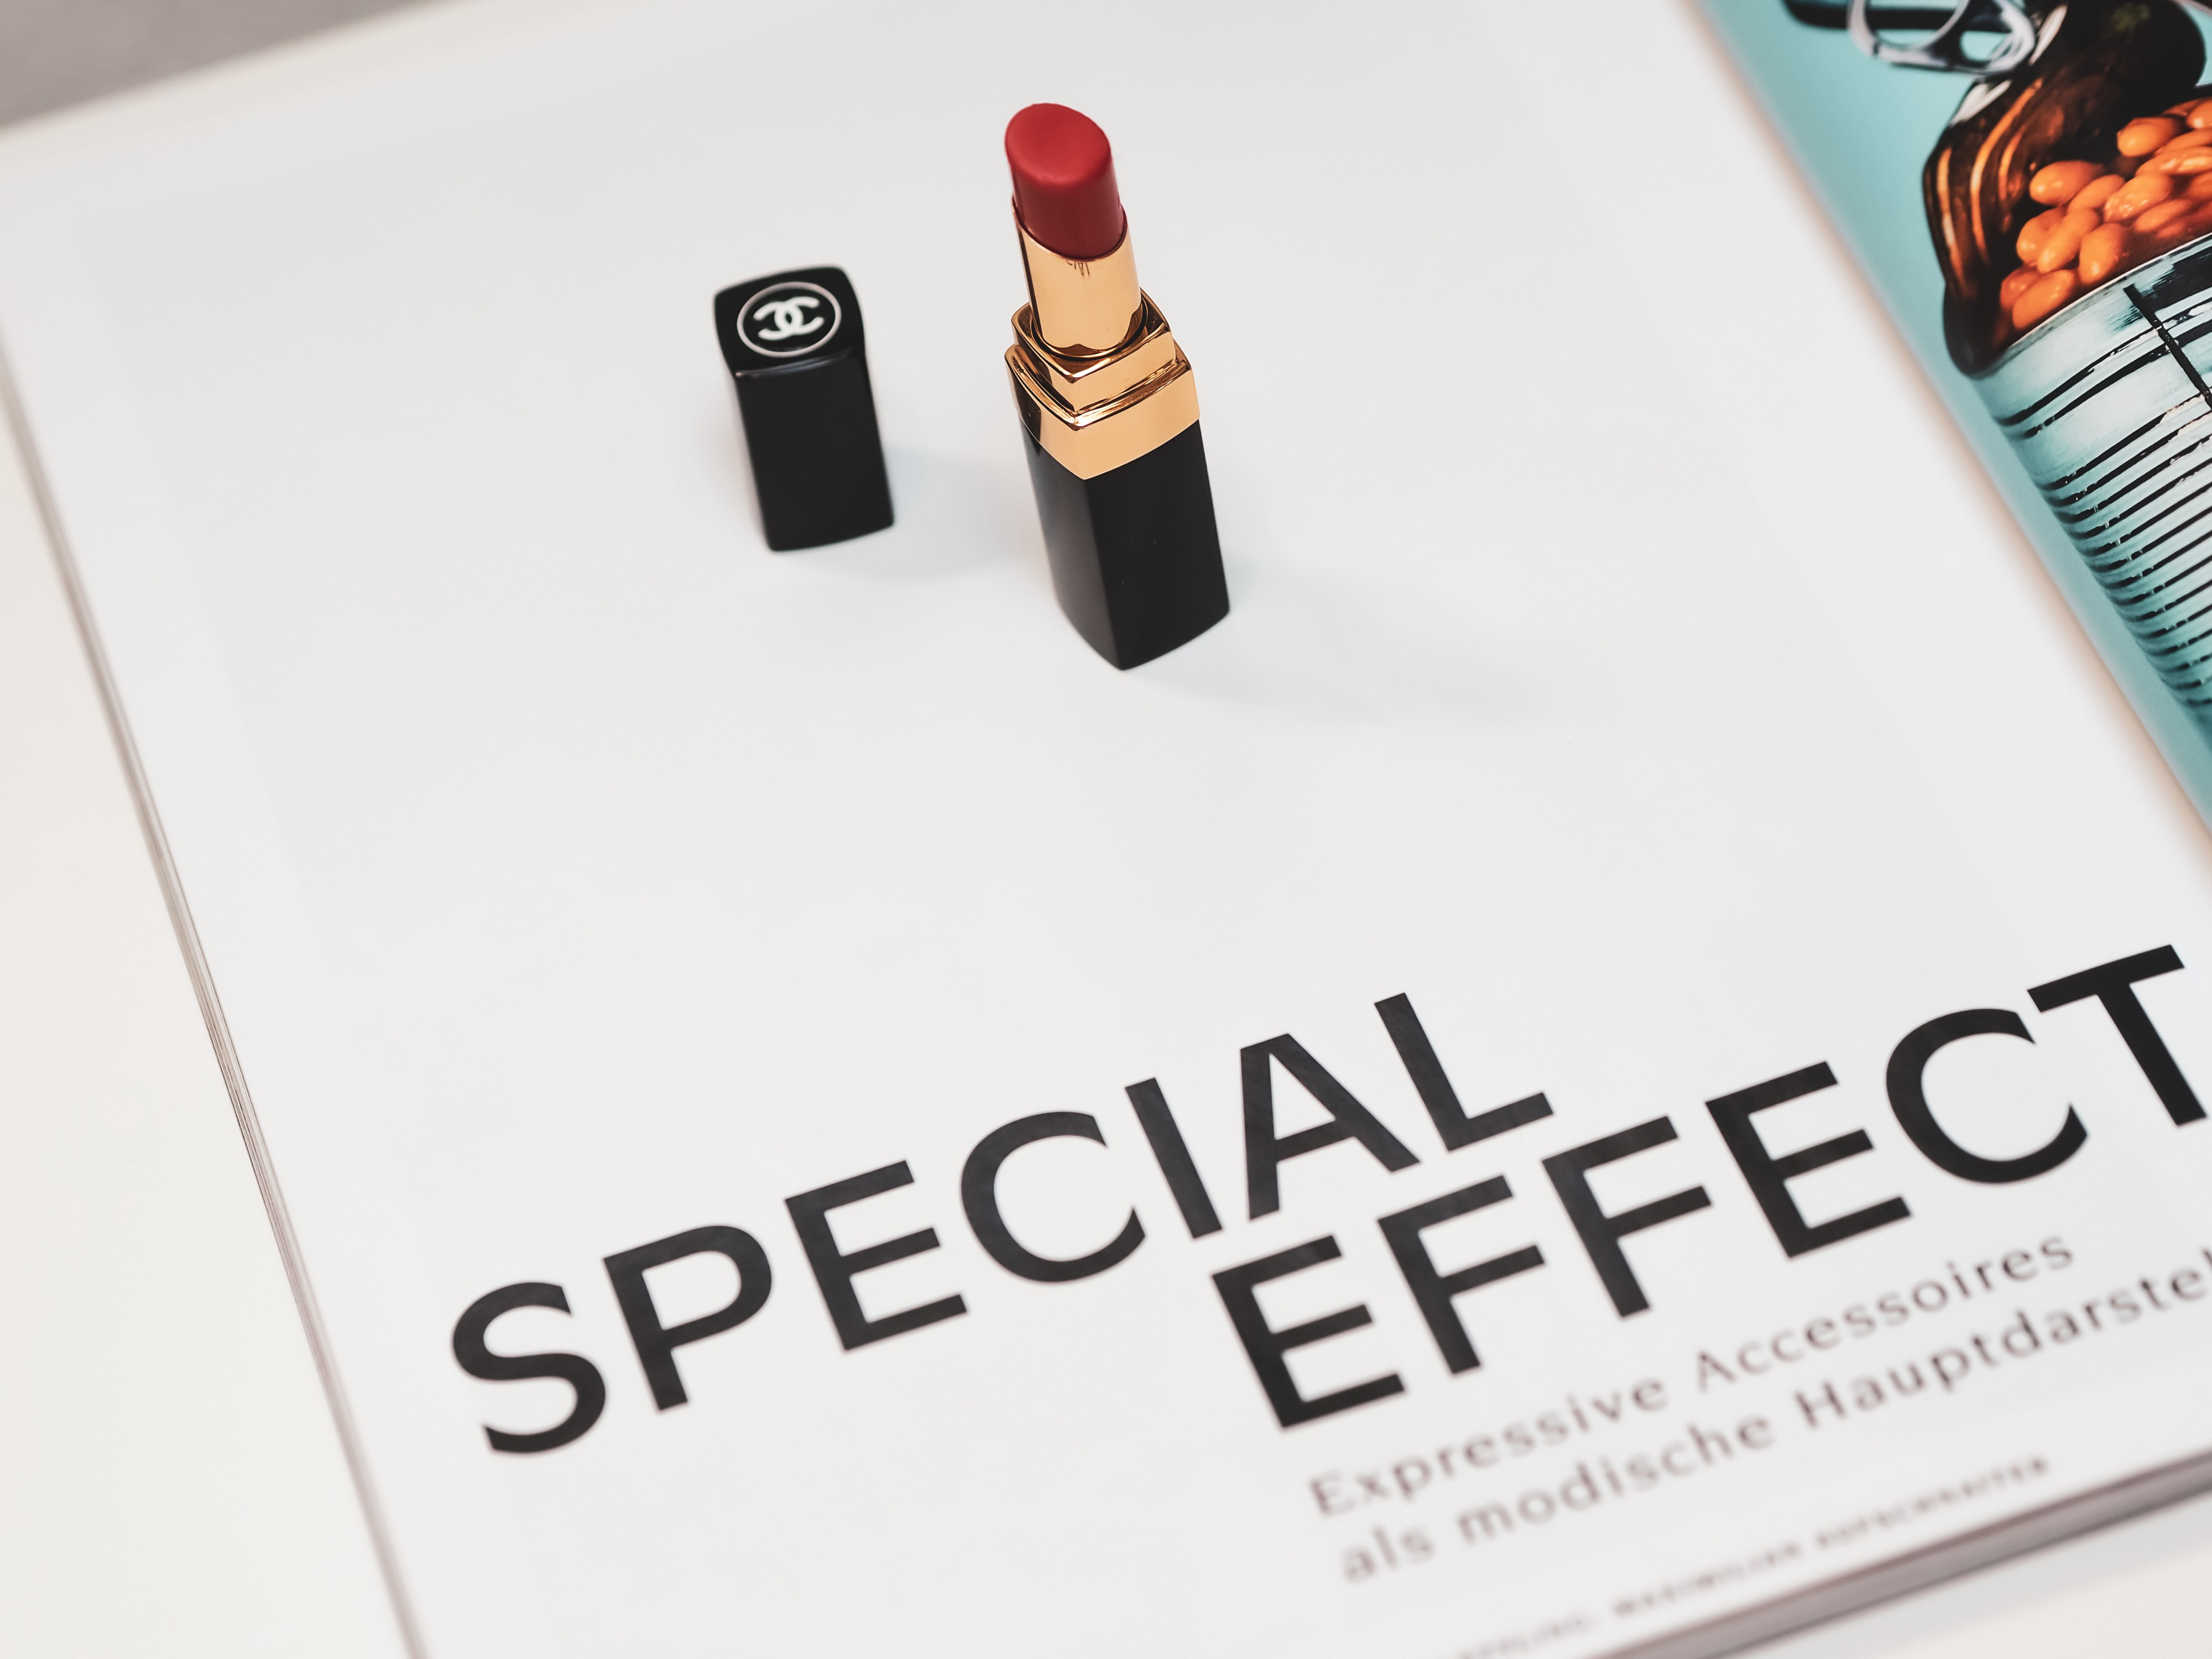 A book with SPECIAL EFFECT written on it. It has a red lipstick standing up on the page.